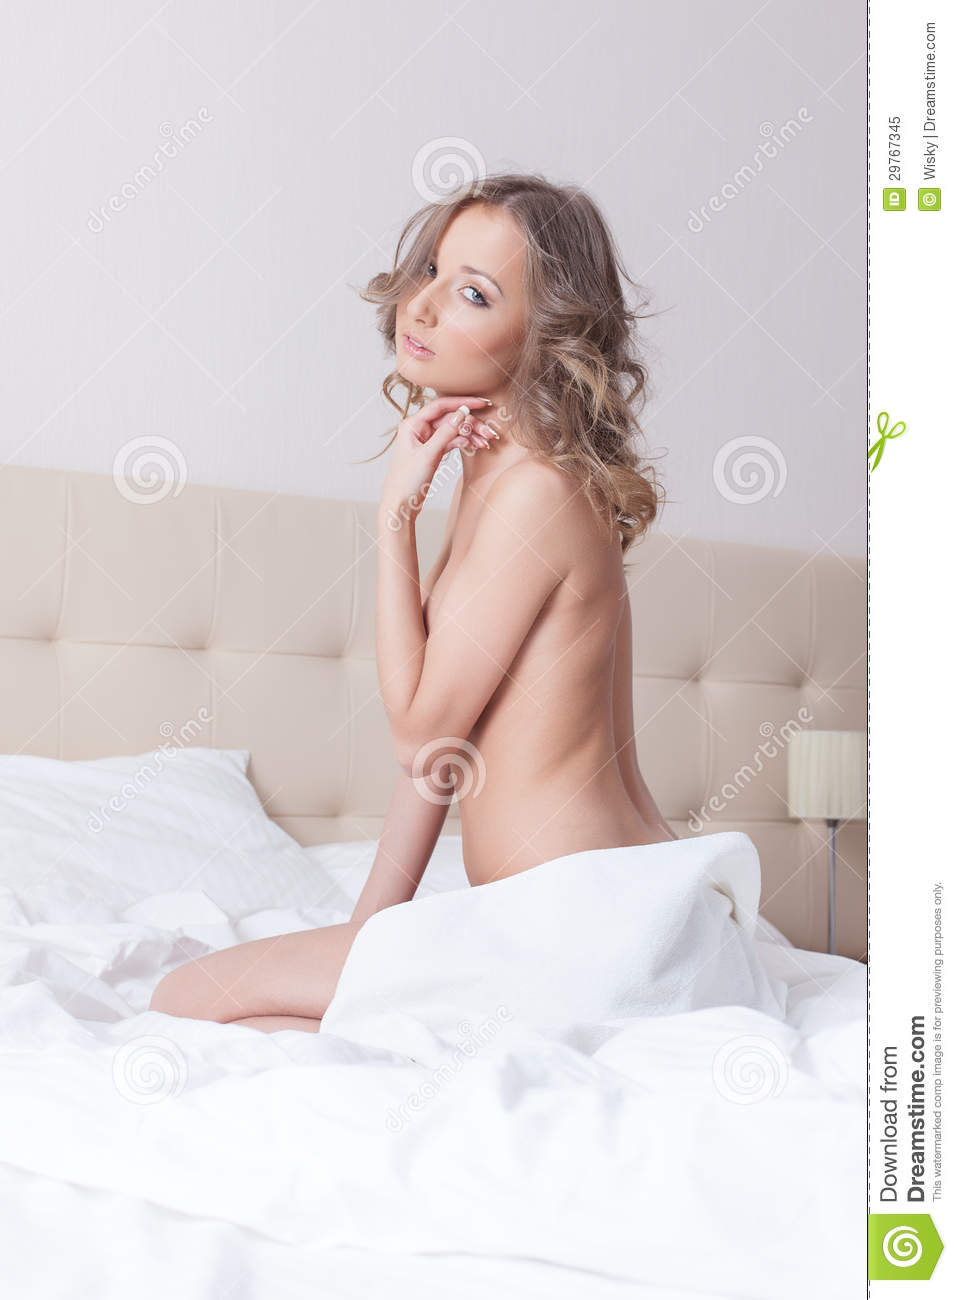 girls nude sitting on bed